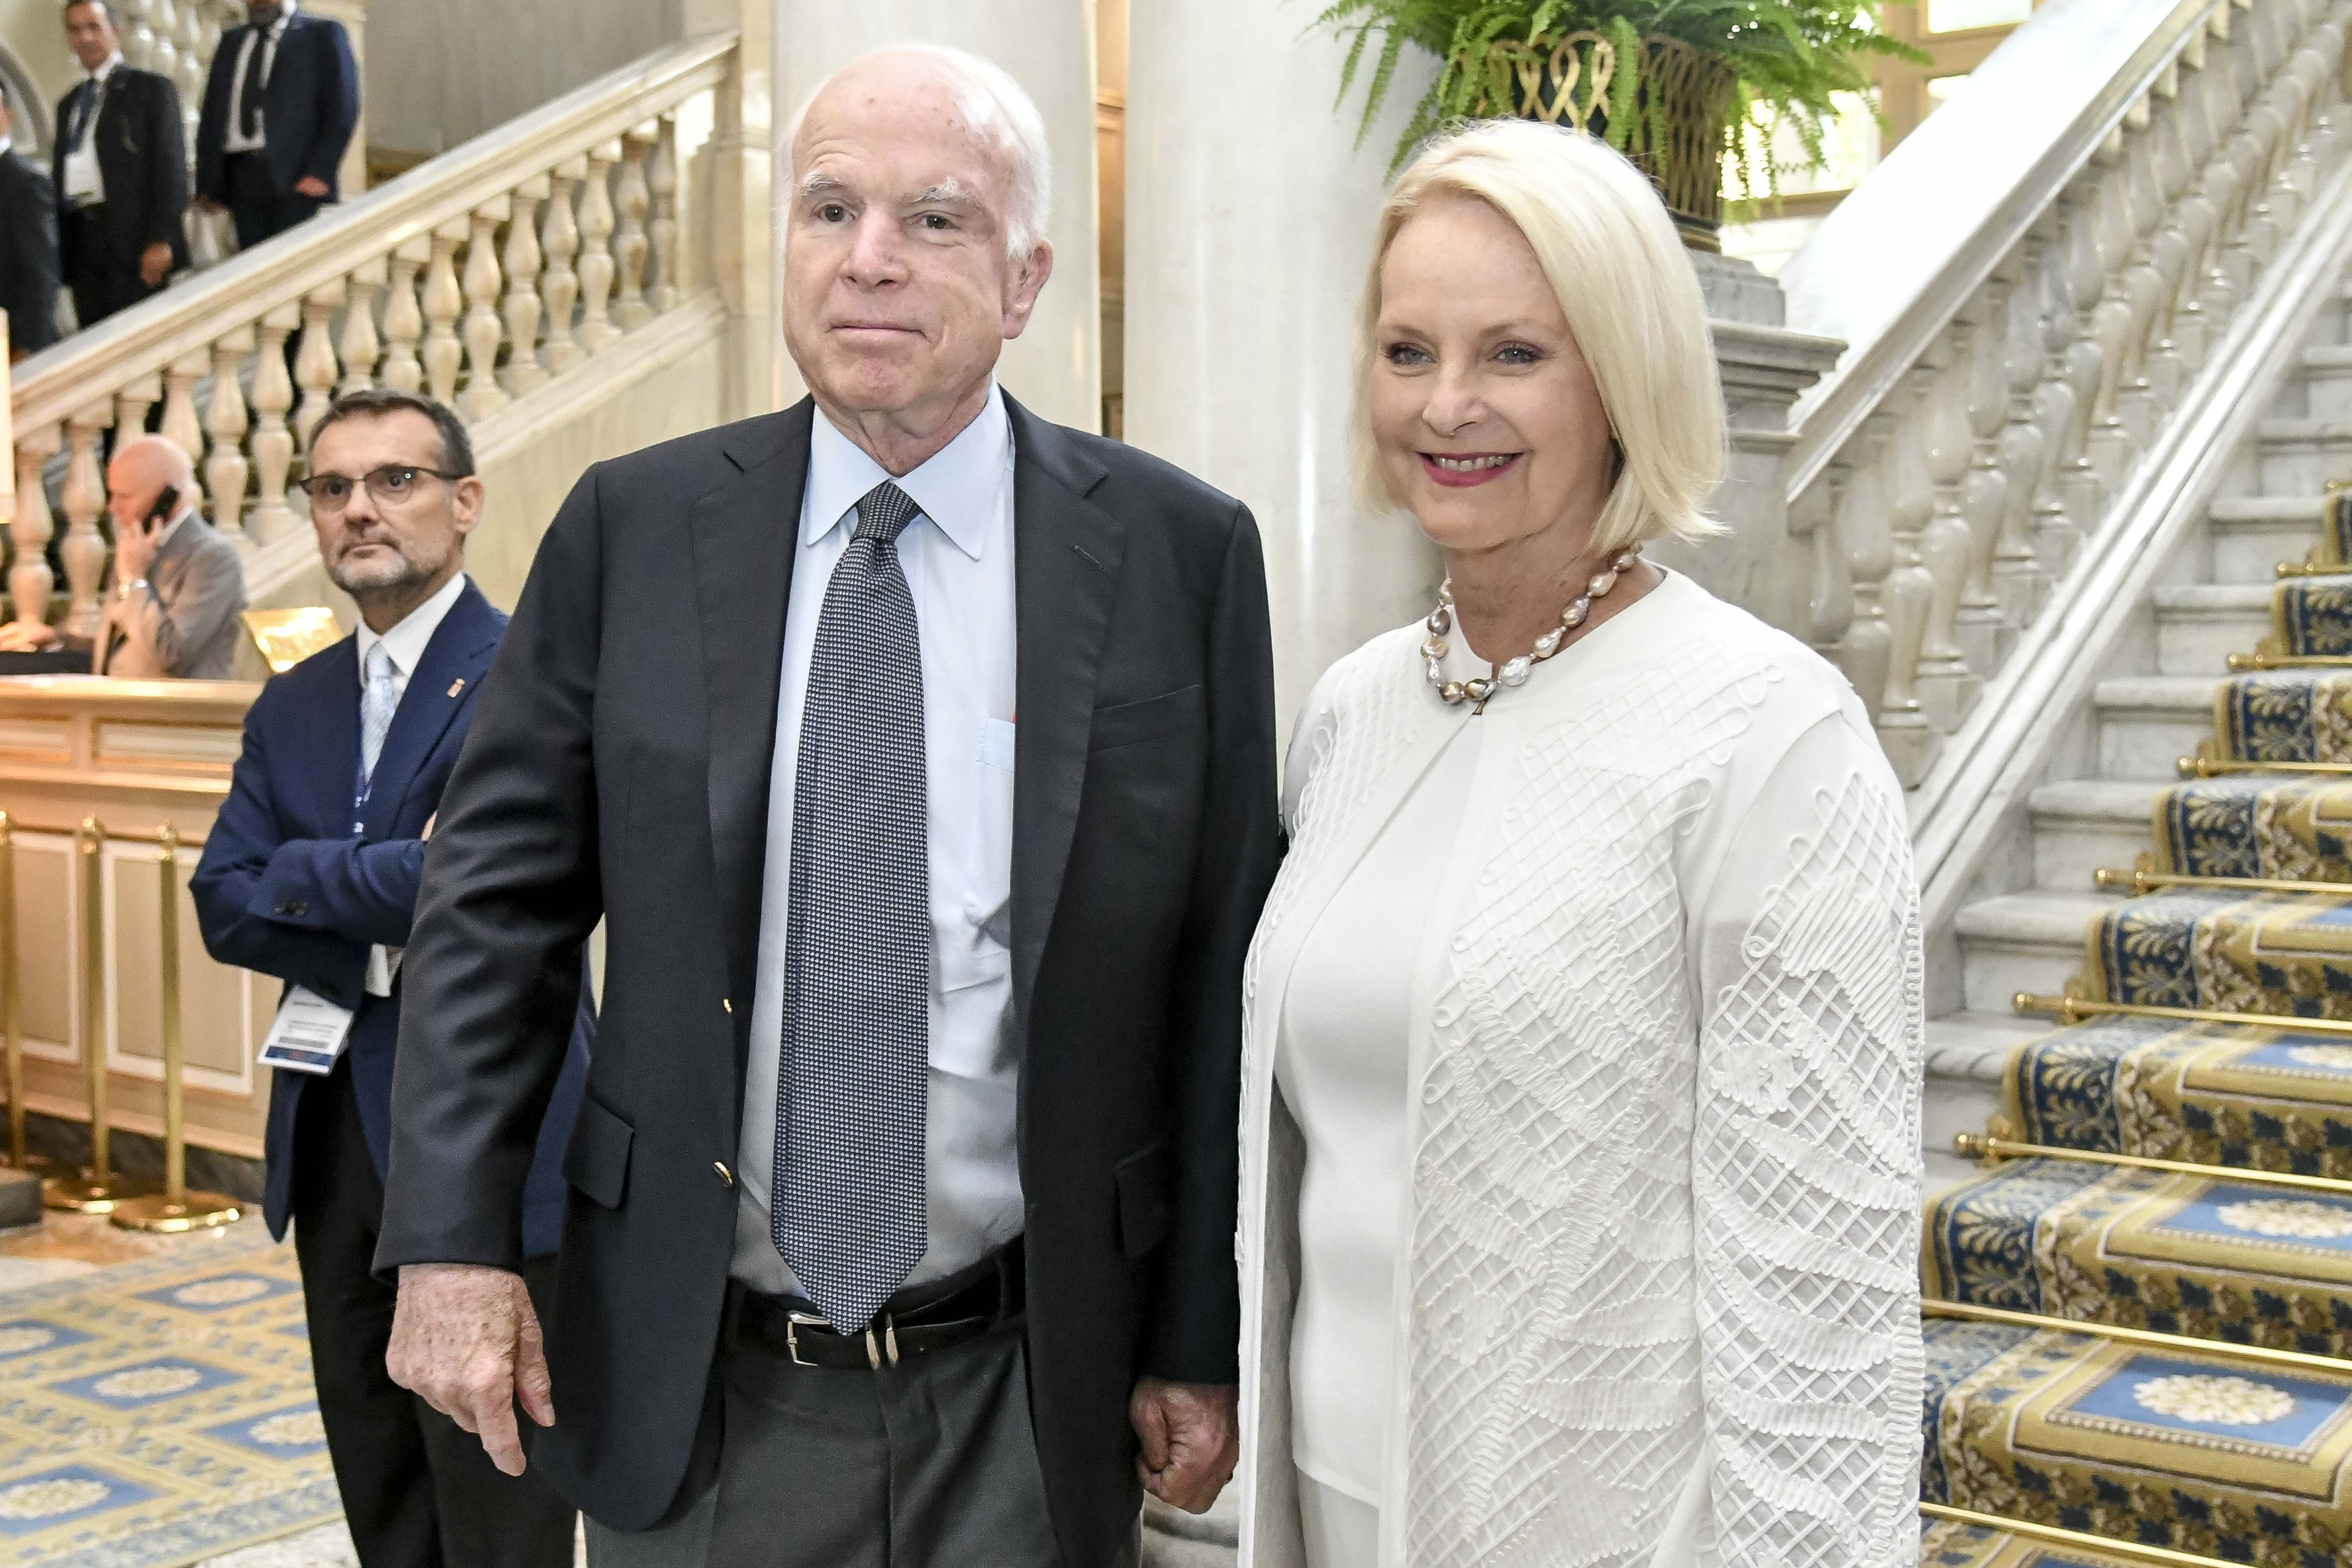 John McCain and Cindy McCain at the 43rd edition of the Ambrosetti European House Forum in Cernobbio, Italy on Sep. 1, 2017.